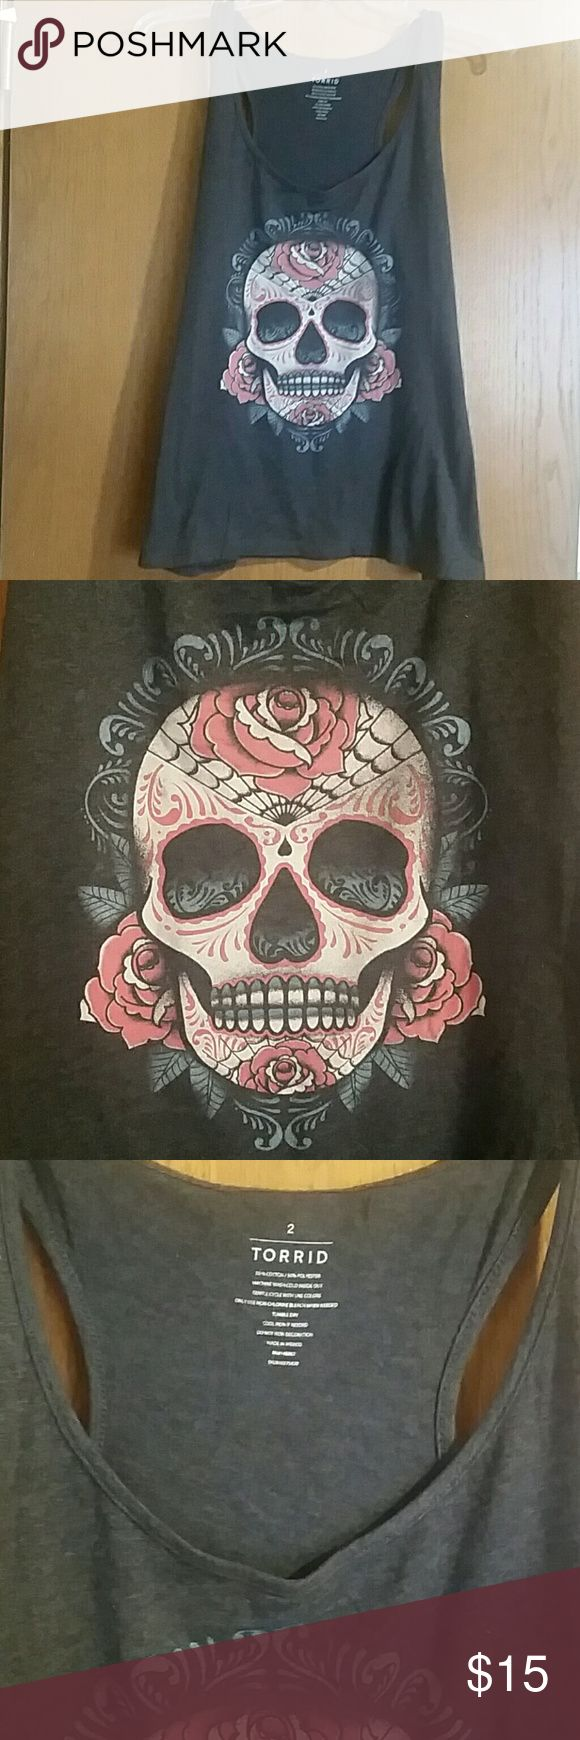 Torrid sugar skull tank top size 2 Torrid sugar skull tank top size 2.  Good pre-owned condition.  Grey with printed sugar skull design.  In good condition with no flaws or defects. torrid Tops Tank Tops